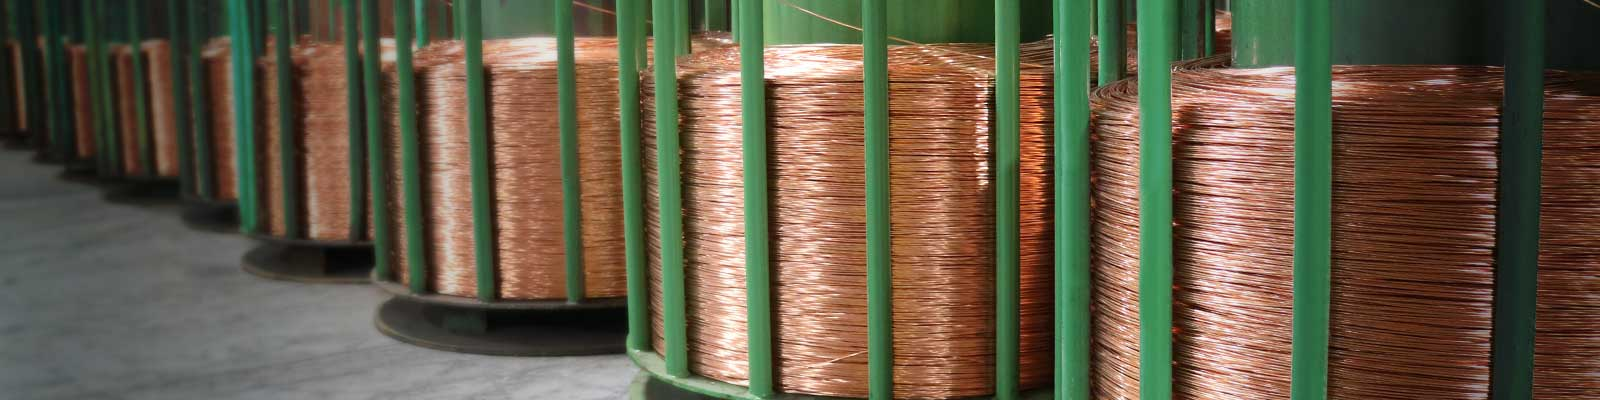 Stem pack of bare copper ready to be drawn through a dye to make stranded wire